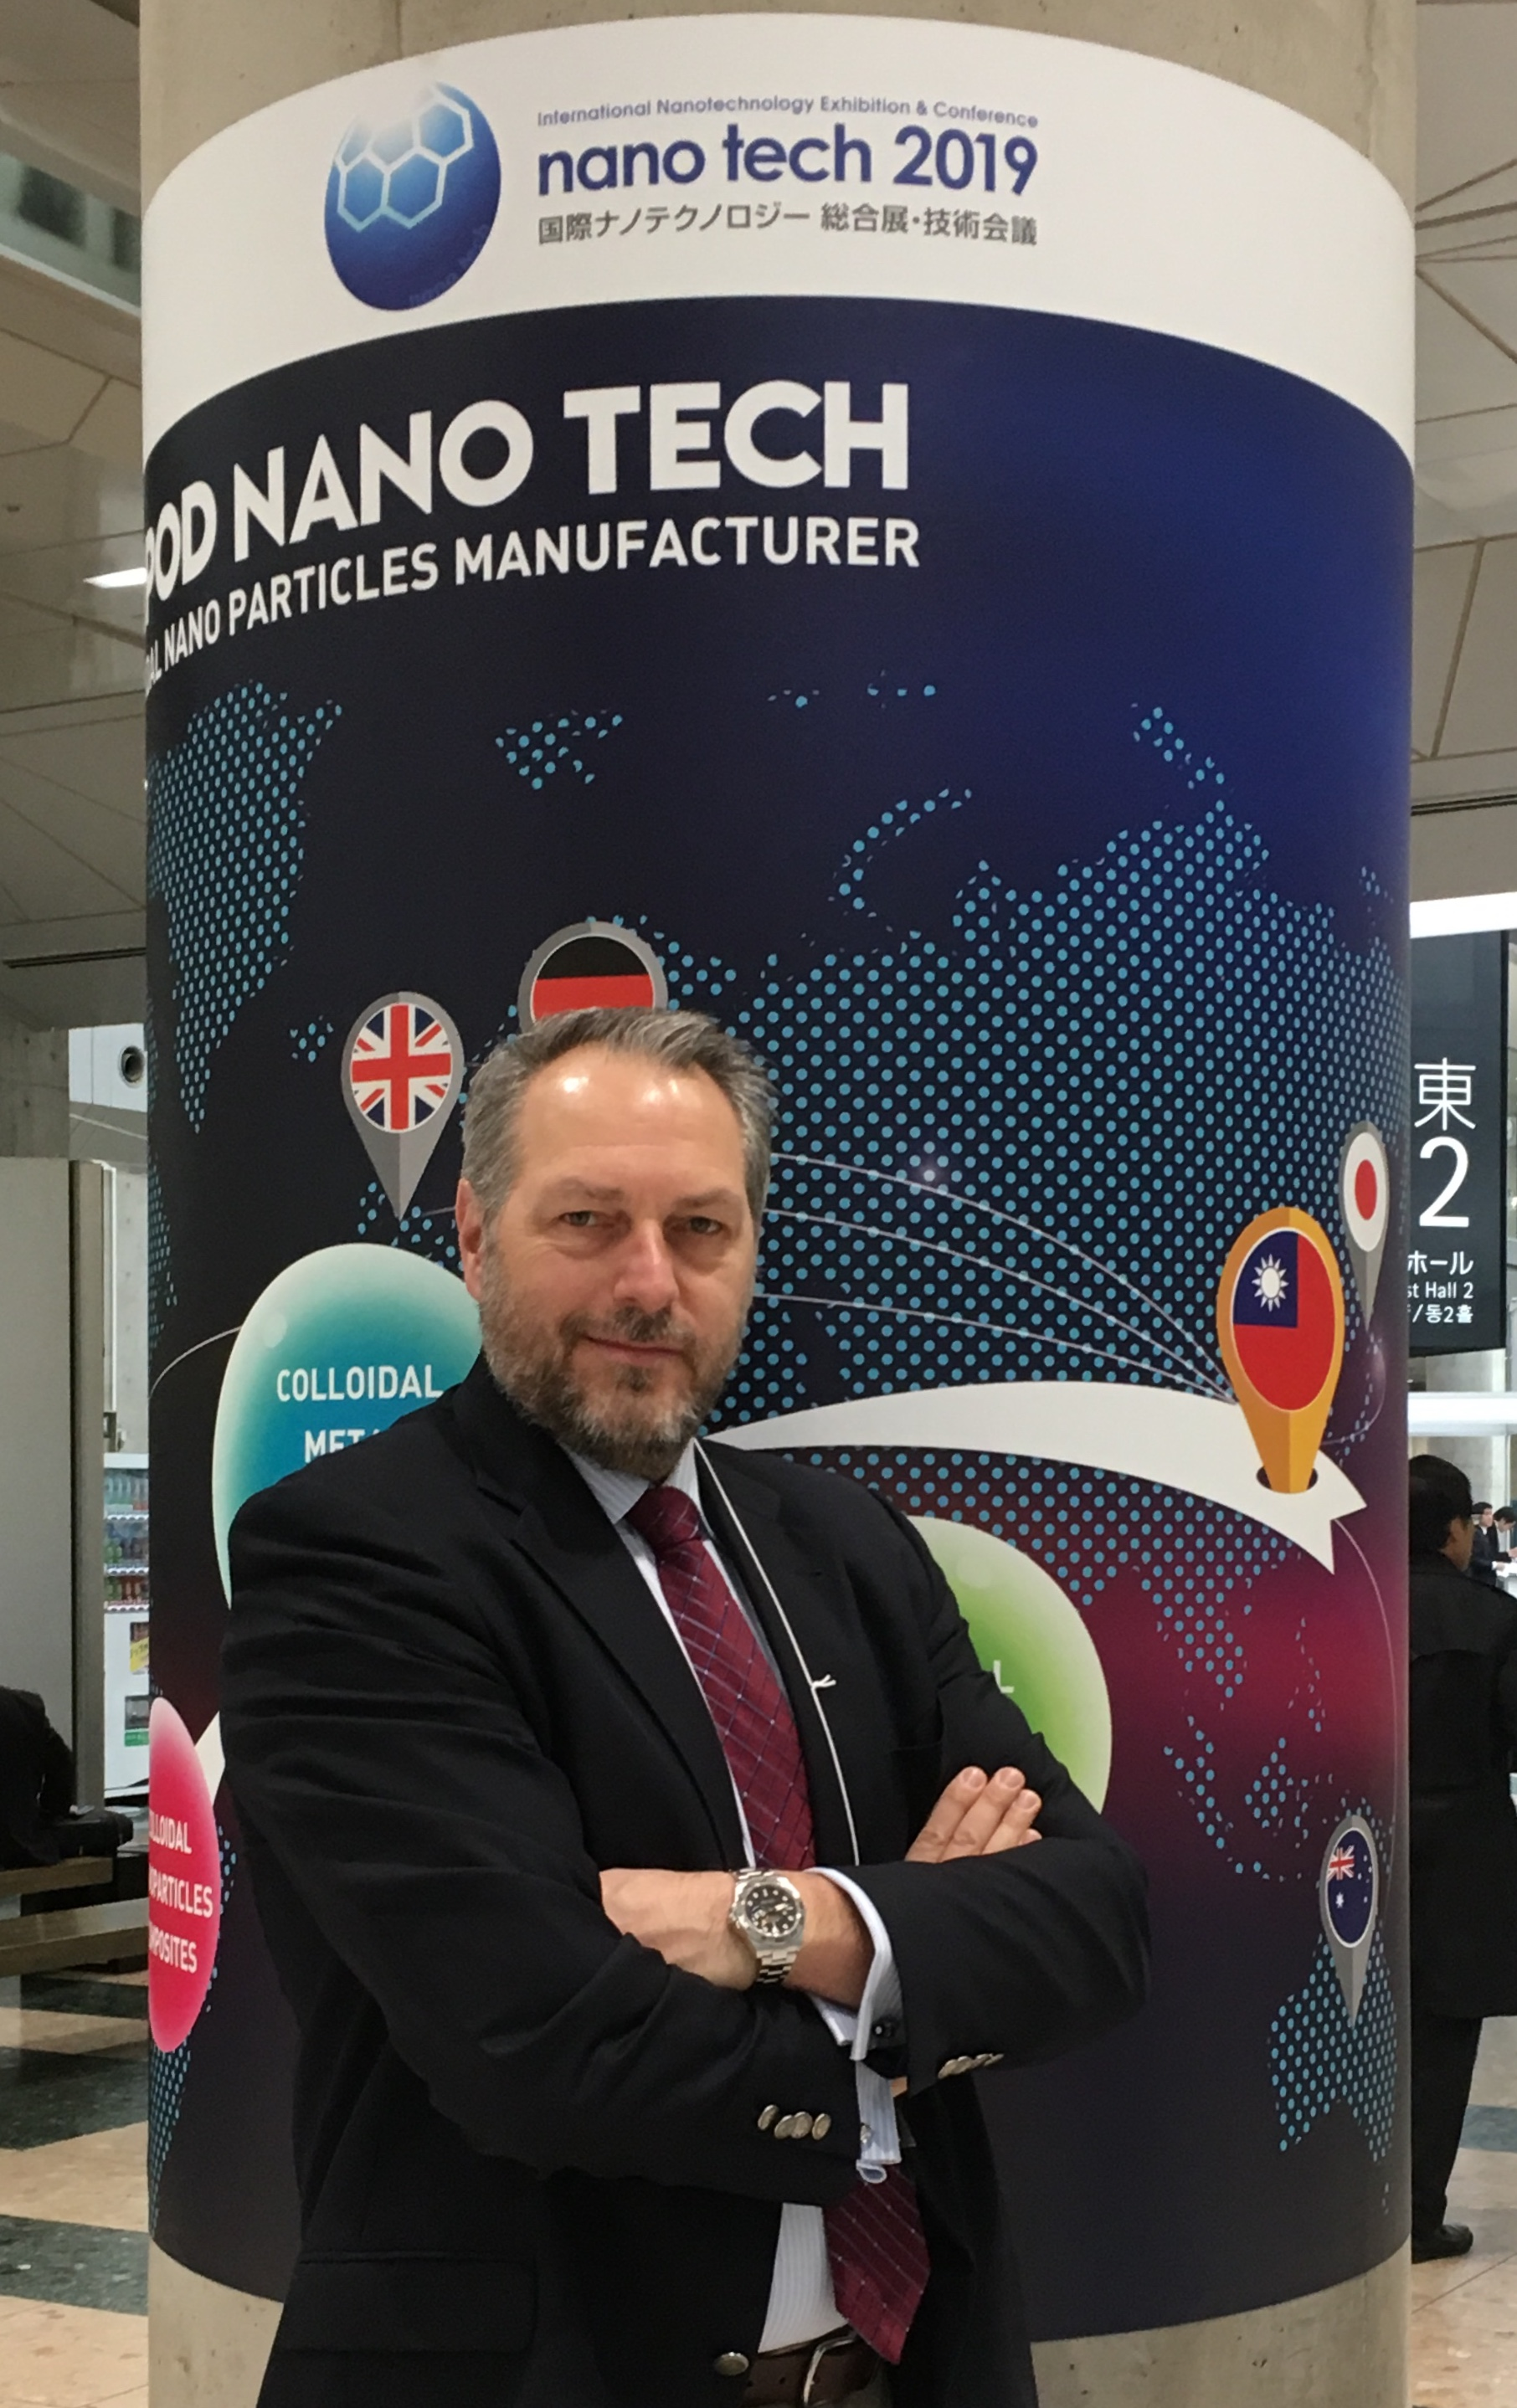 NanoWorld AFM probes CEO Manfred Detterbeck at the nanotech 2019